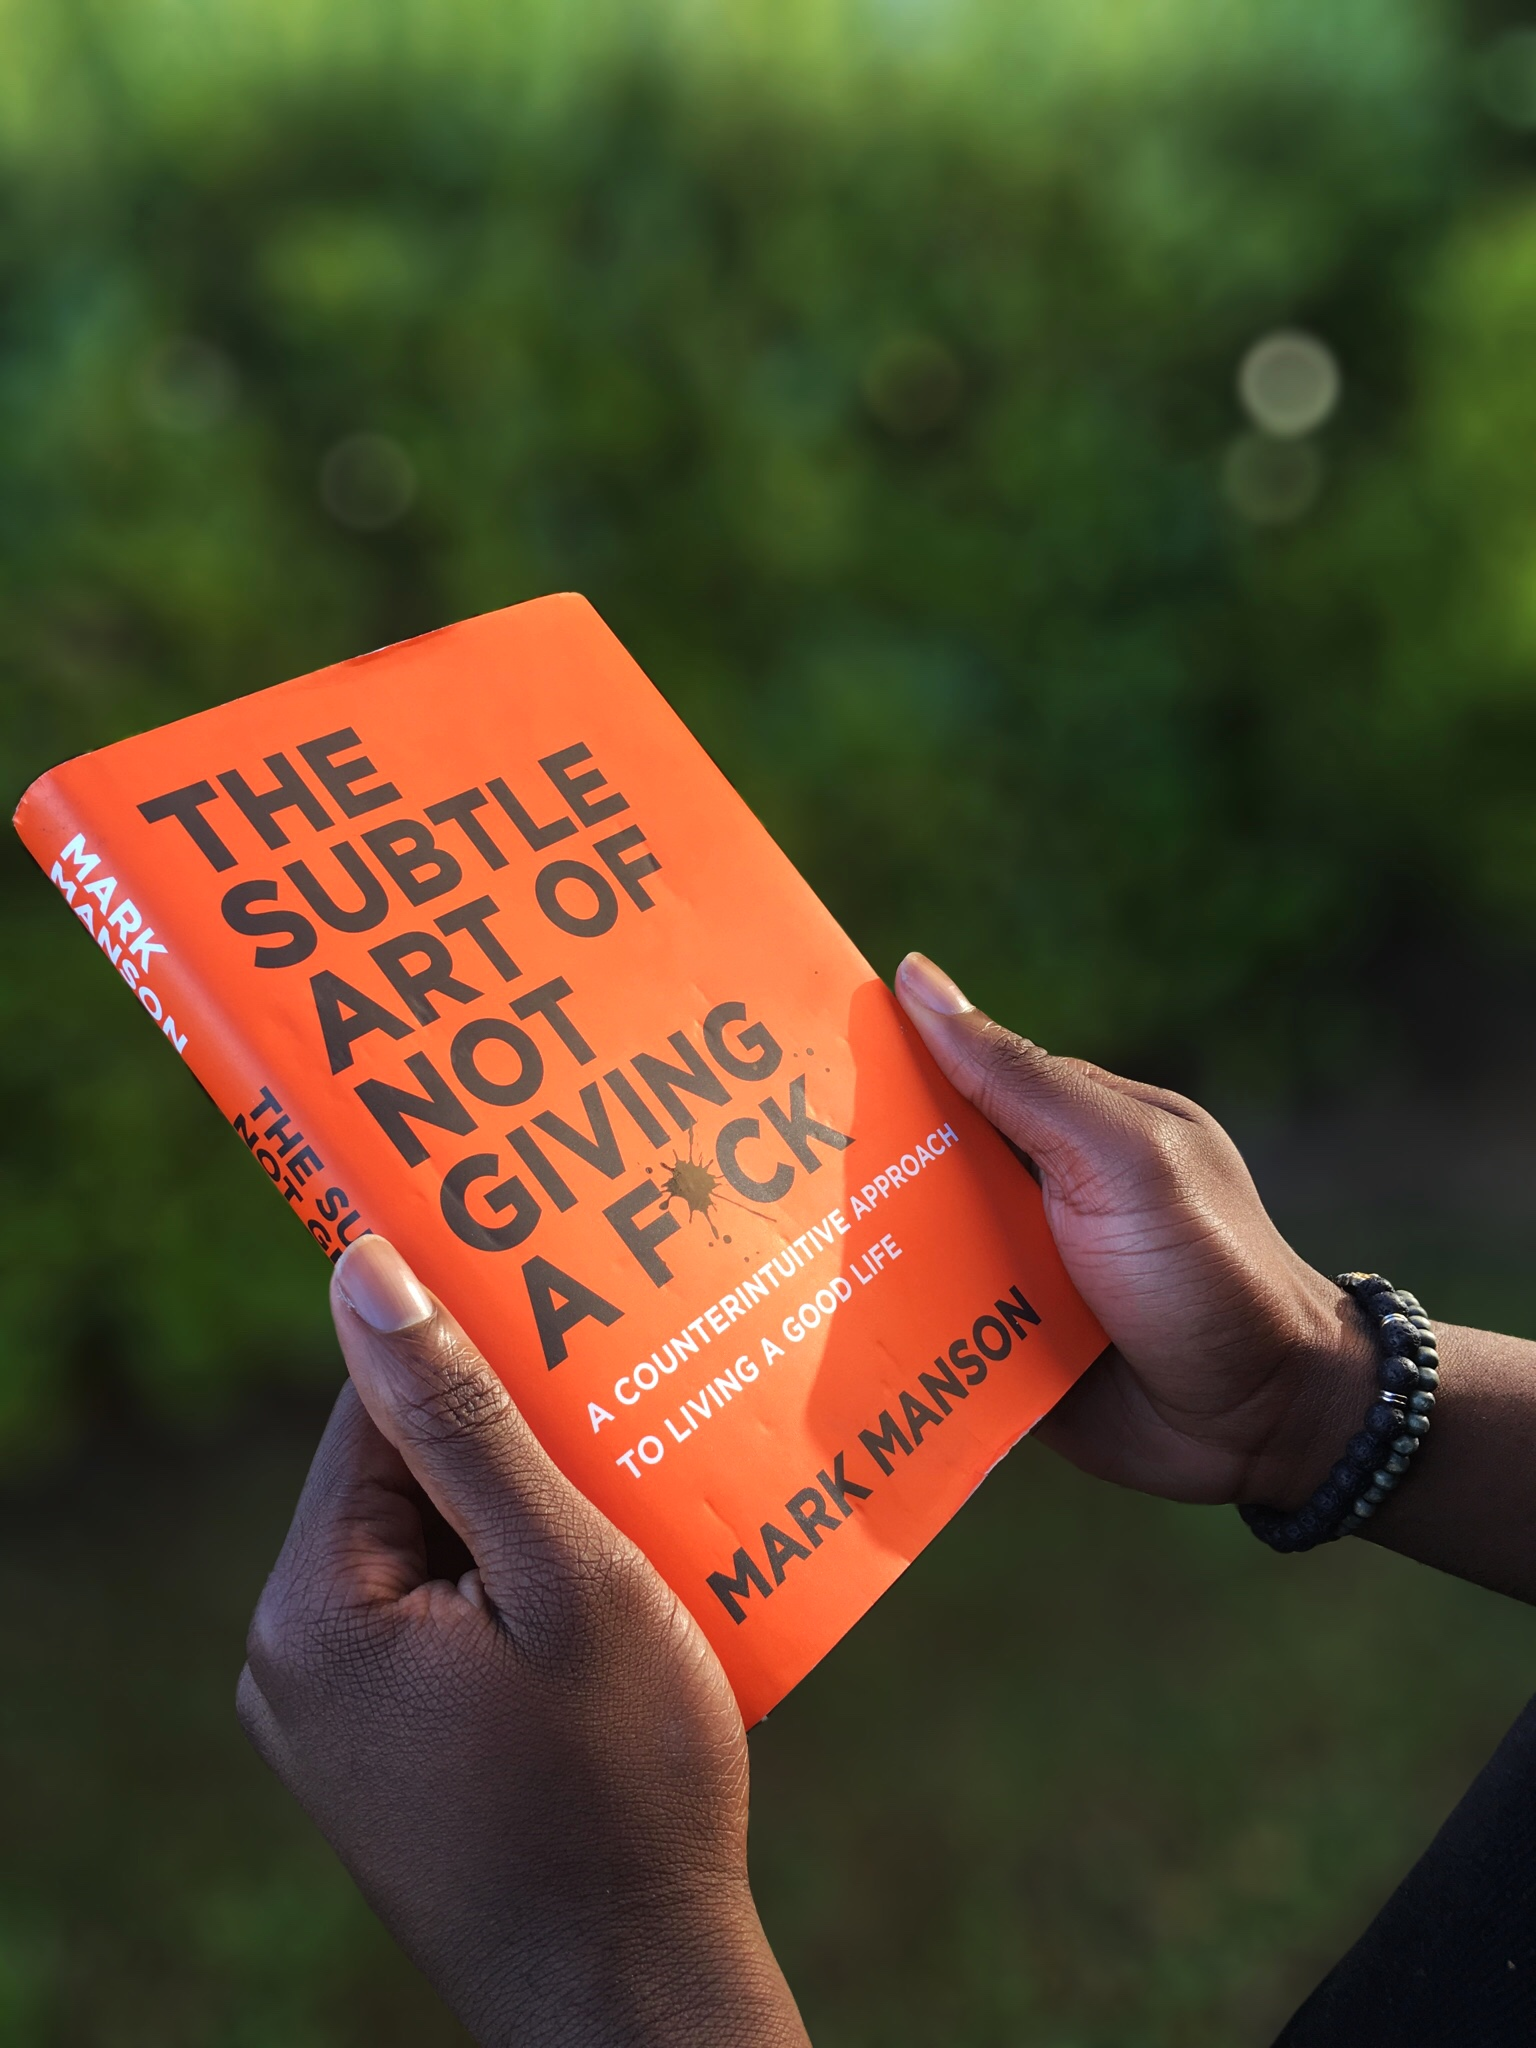 The Subtle Art Of Not Giving A Fuck By Mark Manson – Review